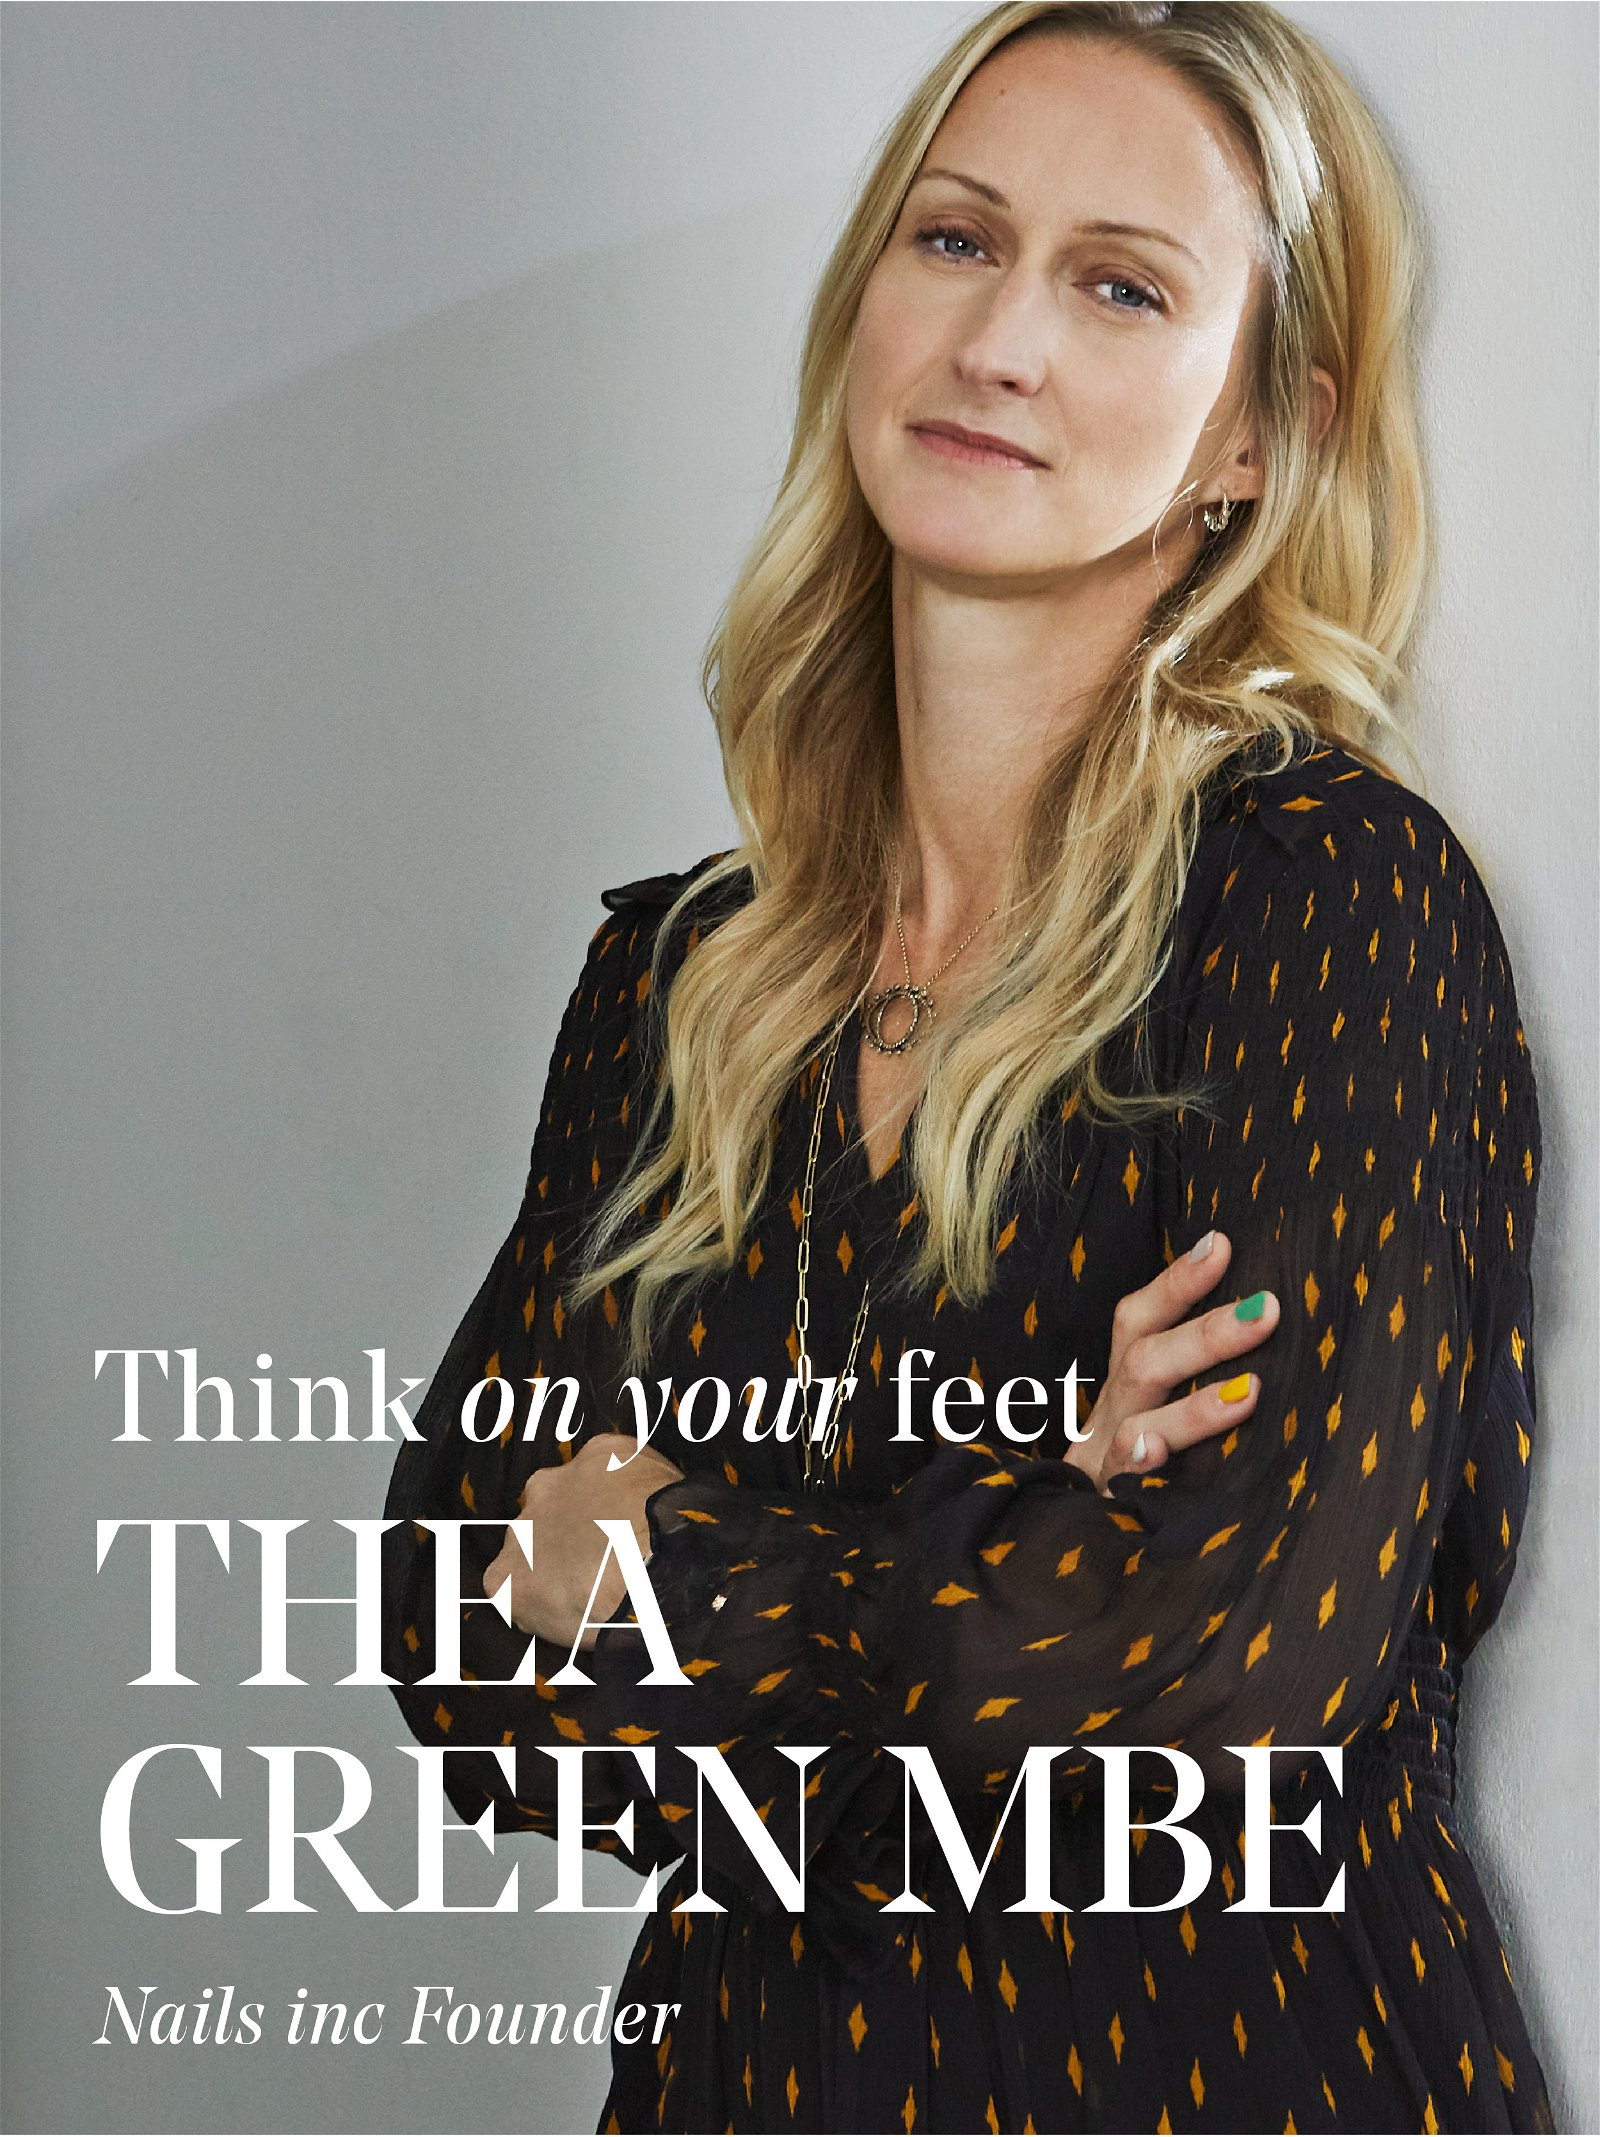 Think On Your Feet - Thea Green MBE